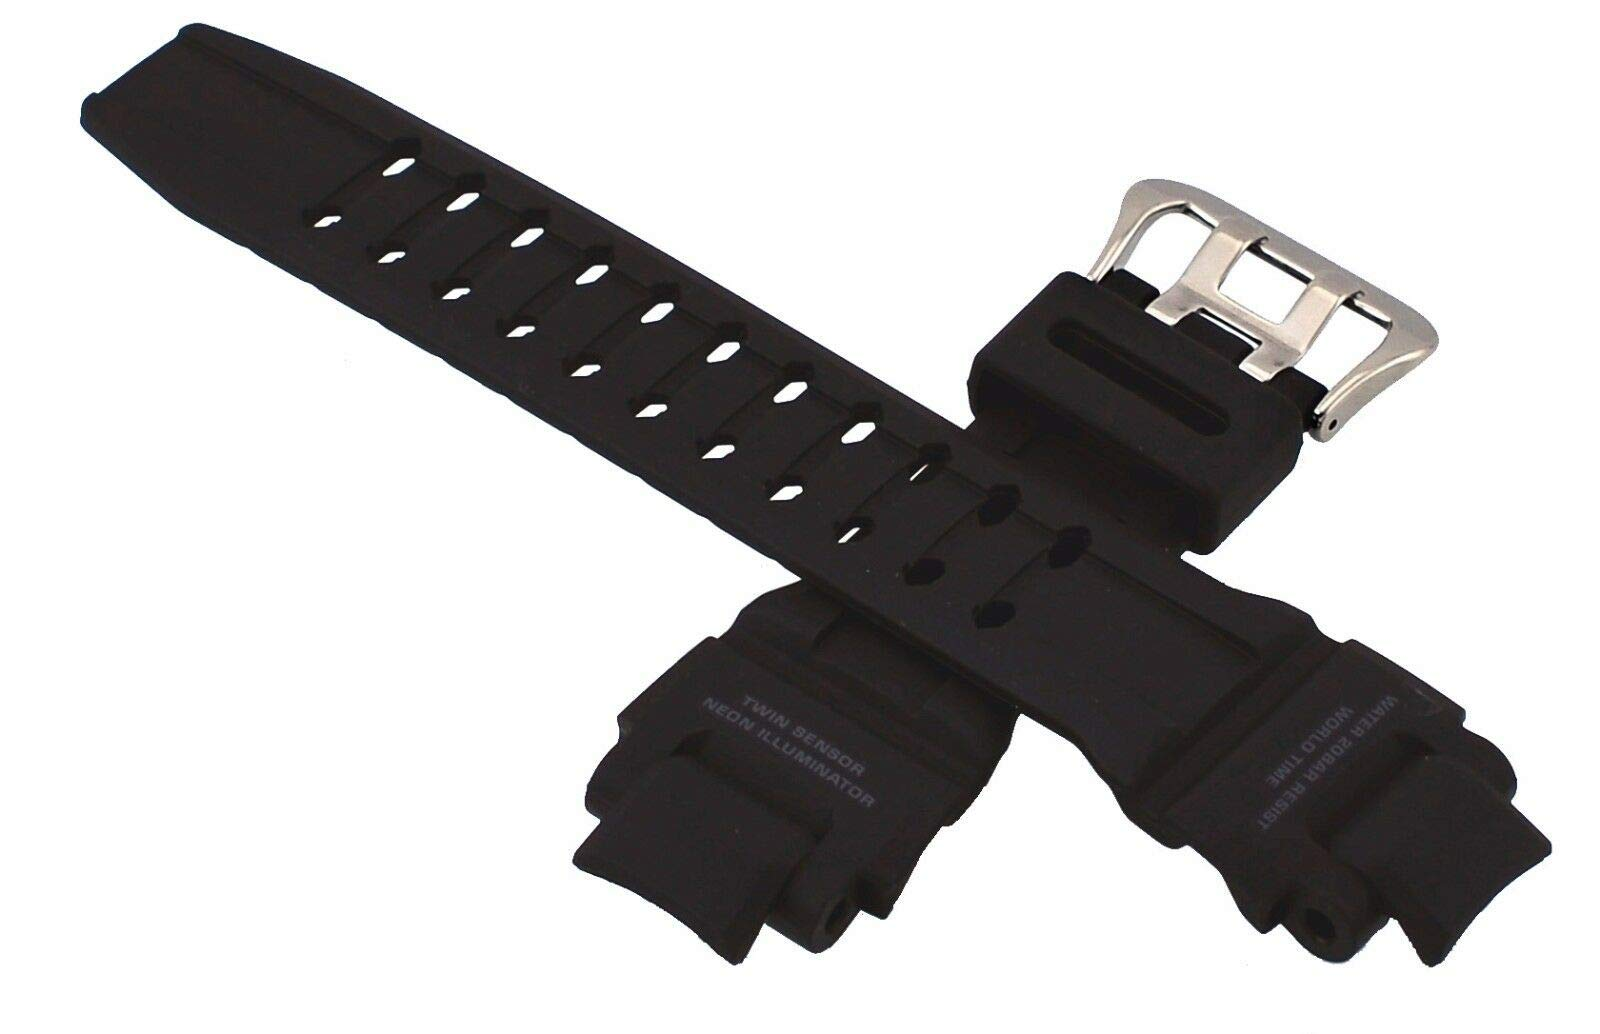 Casio 10435441 Genuine Factory Replacement Resin Band(replaces 10435462), Fits GA-1000 and others by Casio